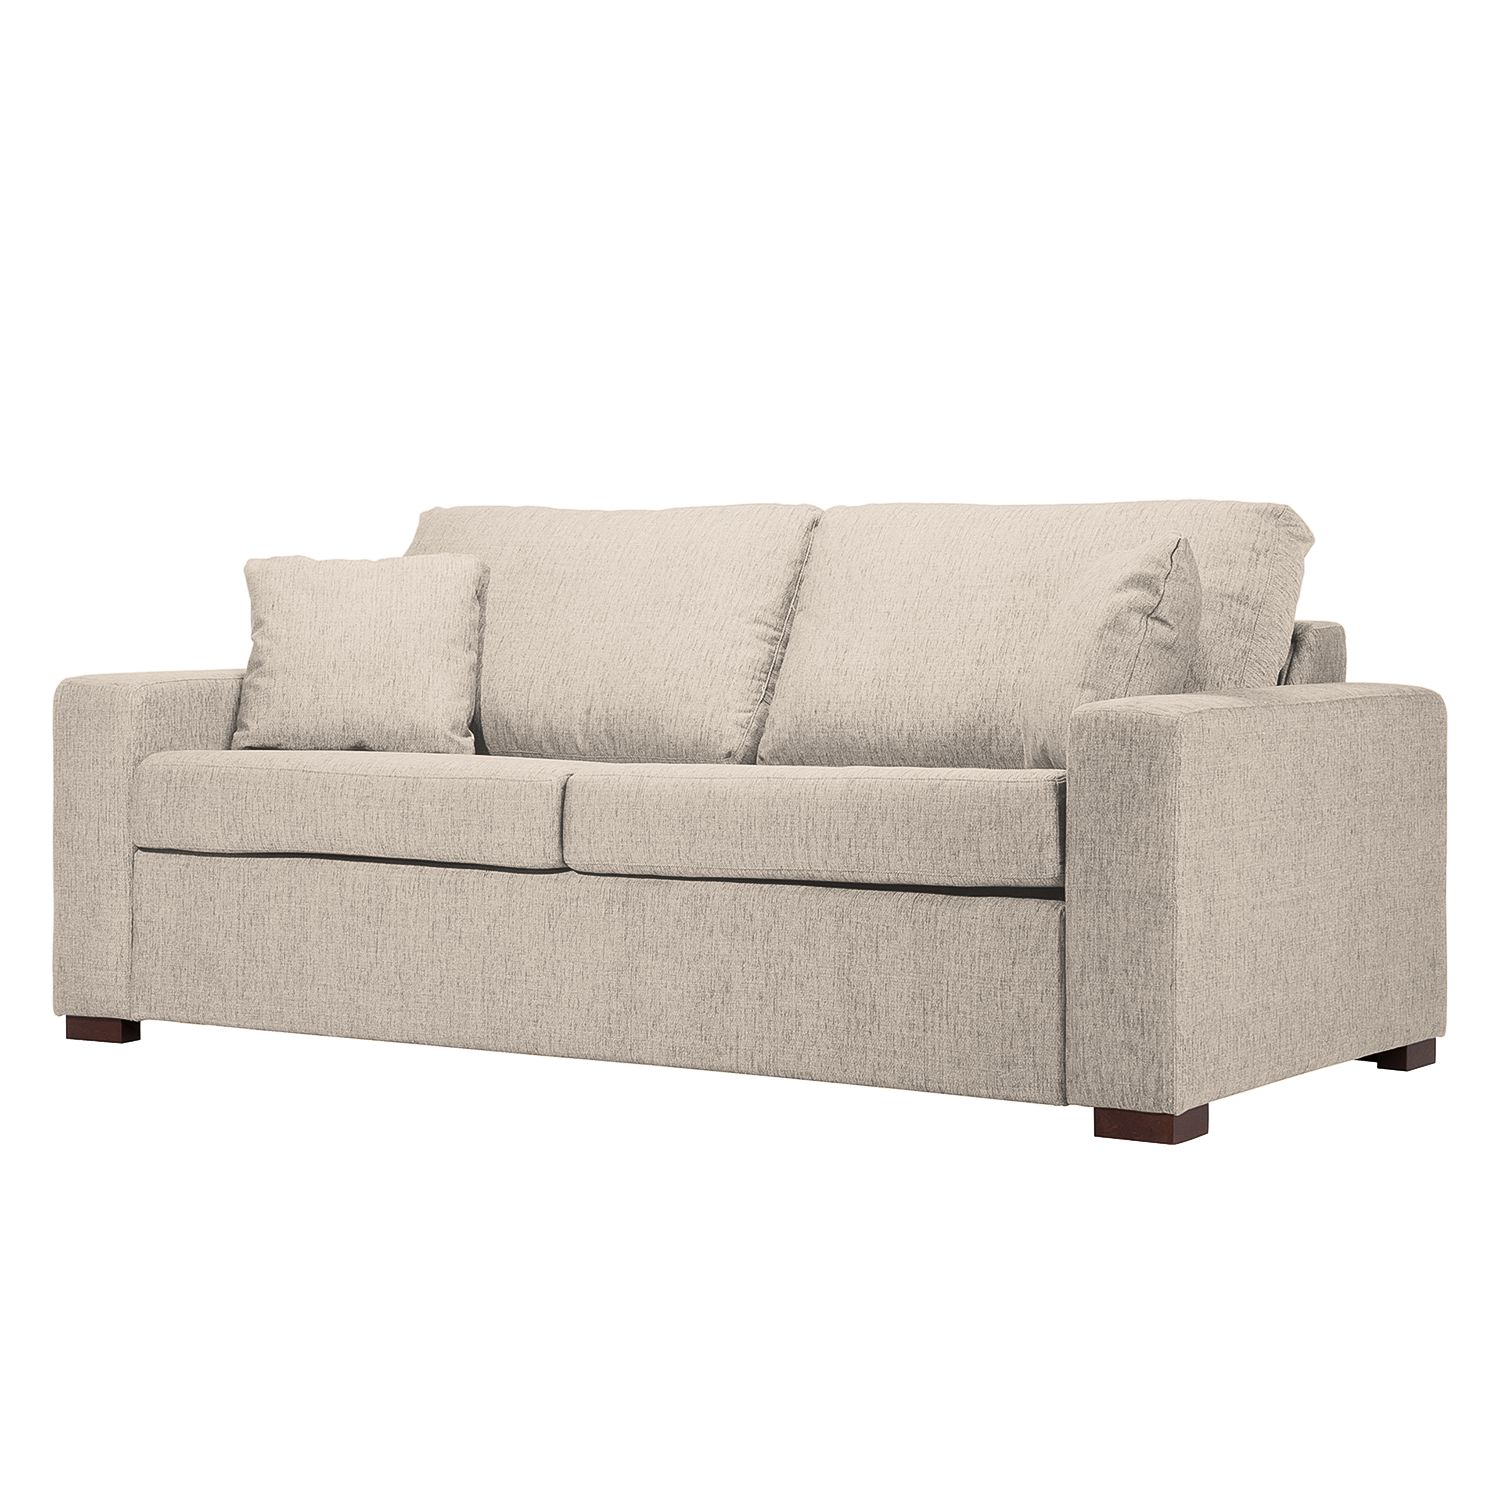 schlafsofa henning ii webstoff stoff kiara beige grau i g nstig online kaufen. Black Bedroom Furniture Sets. Home Design Ideas